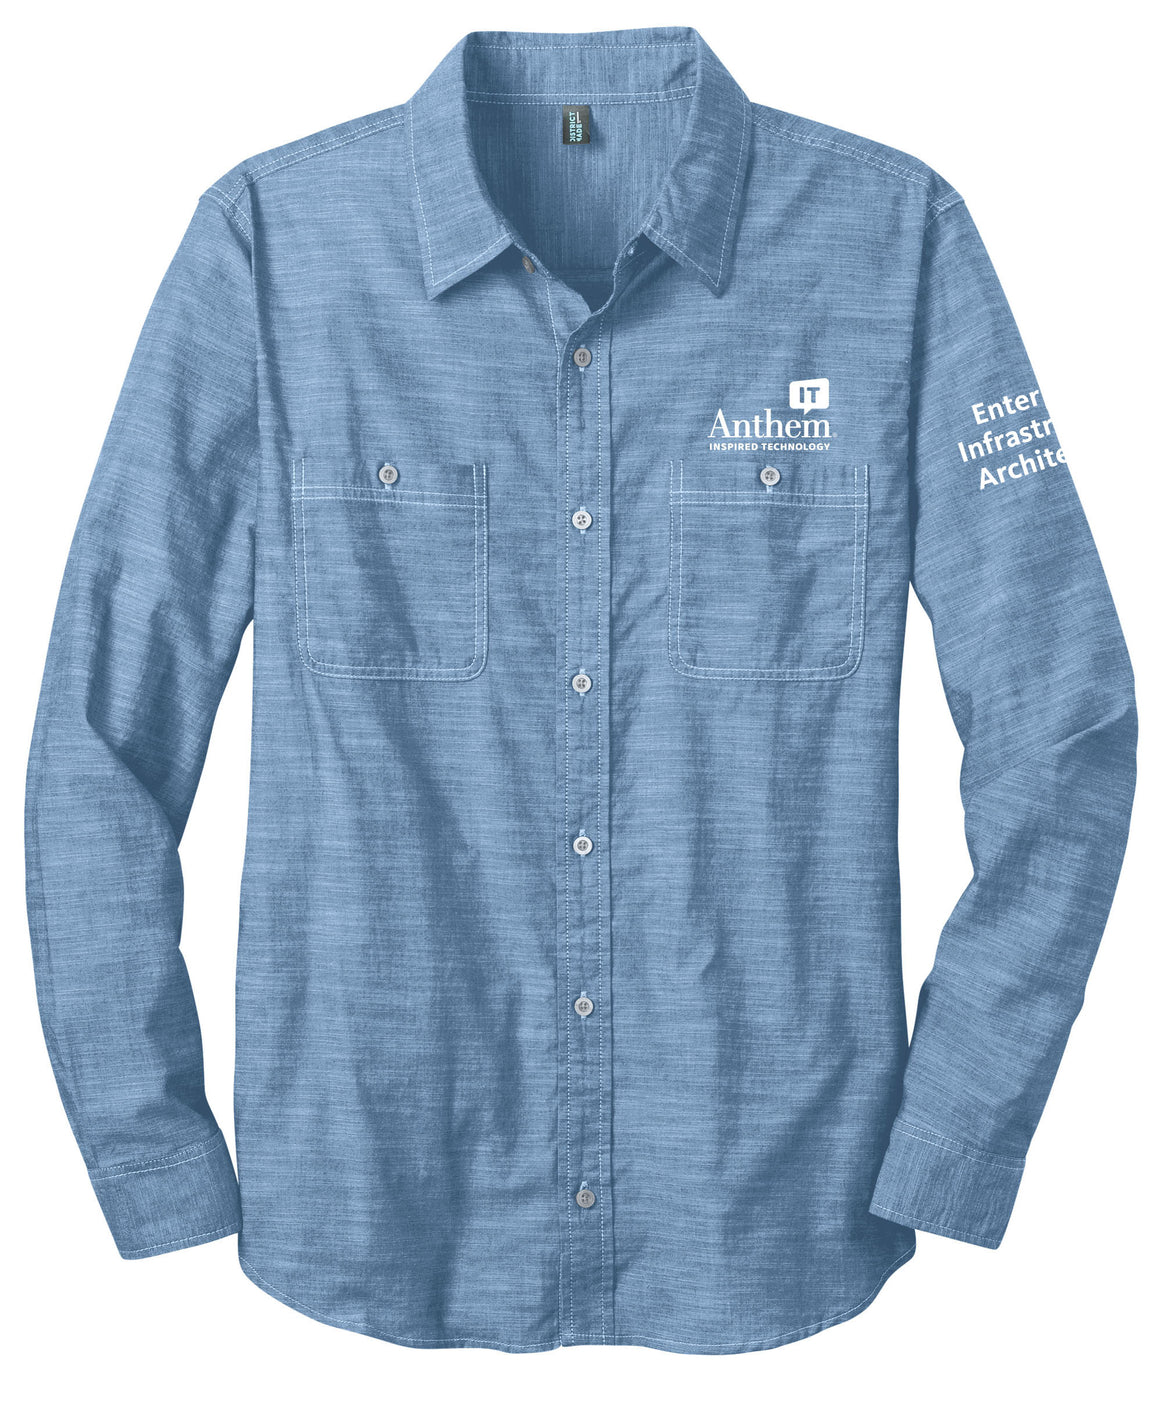 Mens Port Authority Slub Chambray Shirt - EIA